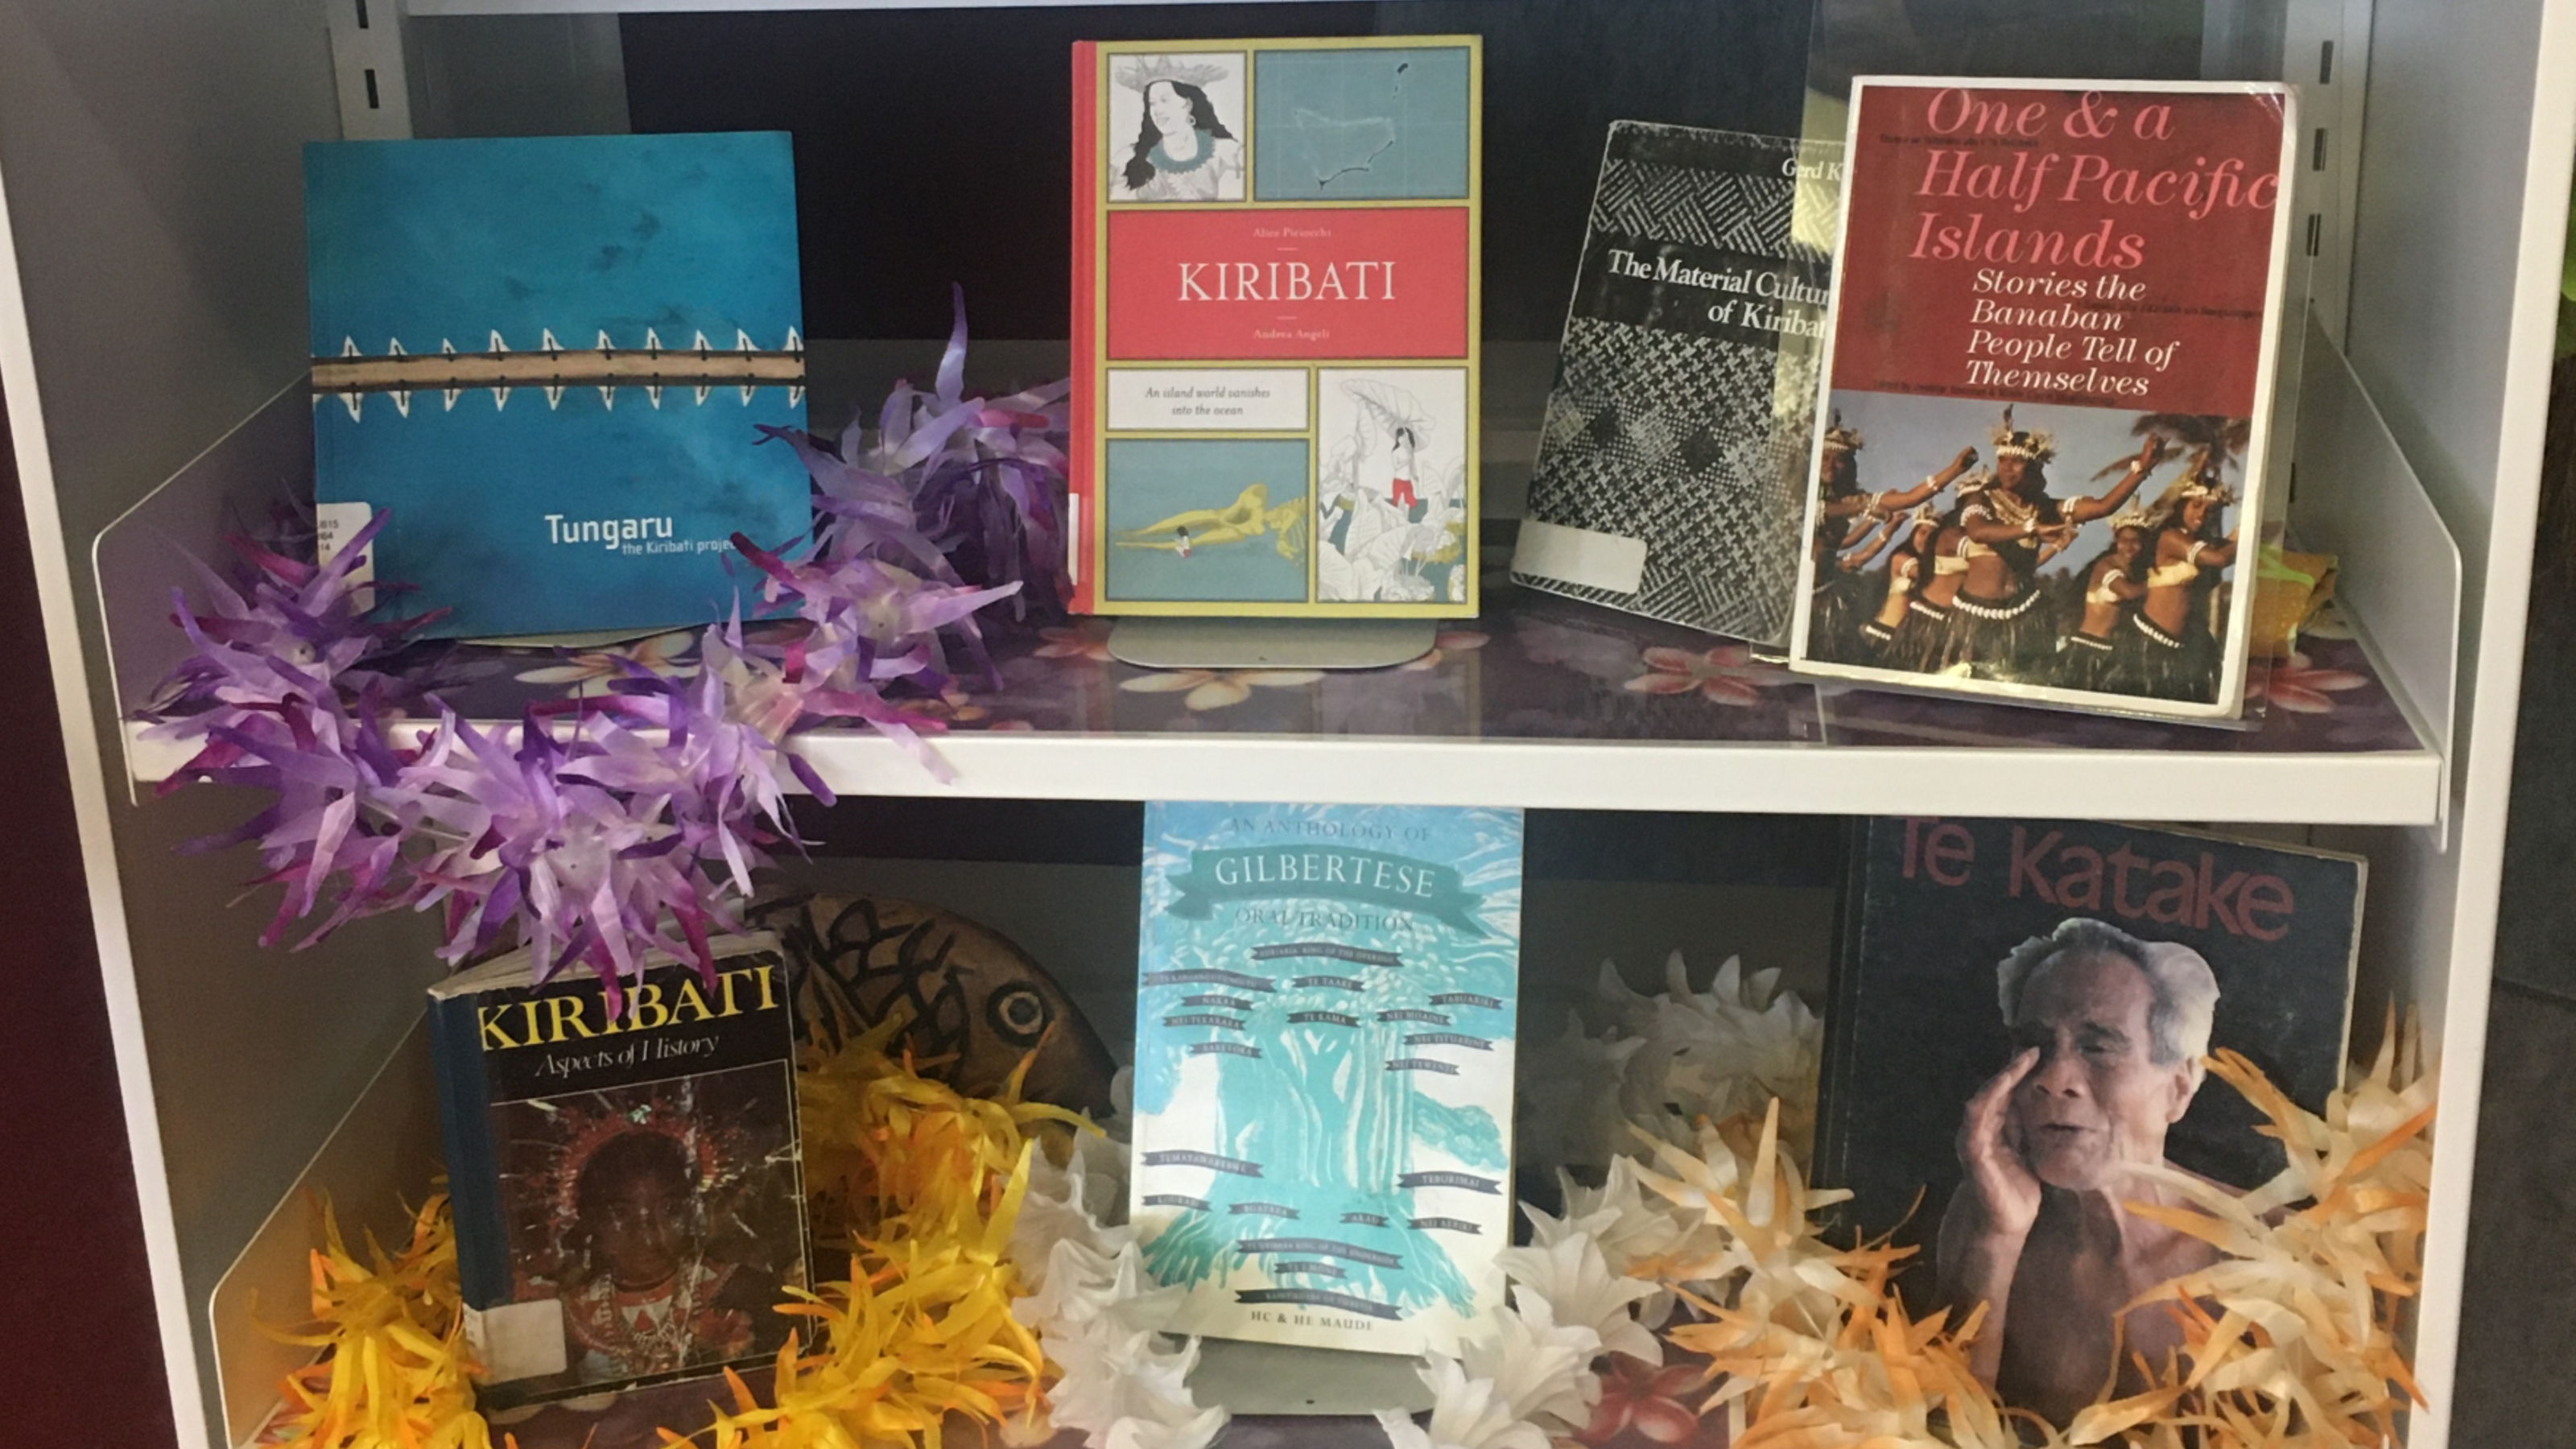 Seven books about Kiribati presented on library shelves surrounded by purple, yellow, and white garlands.